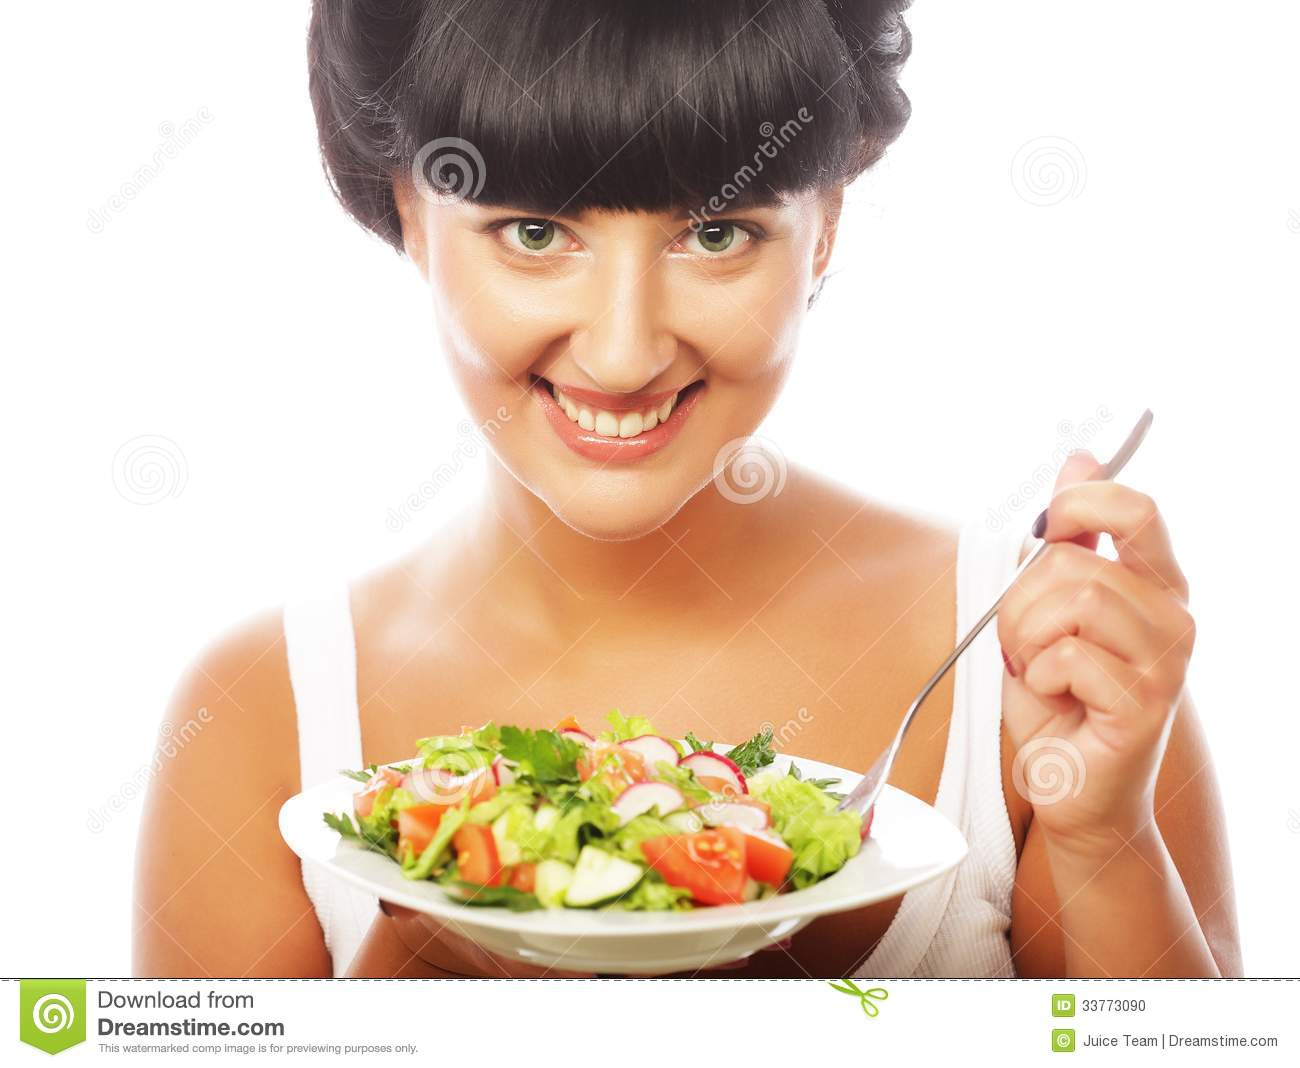 young-happy-woman-eating-salad-isolated-